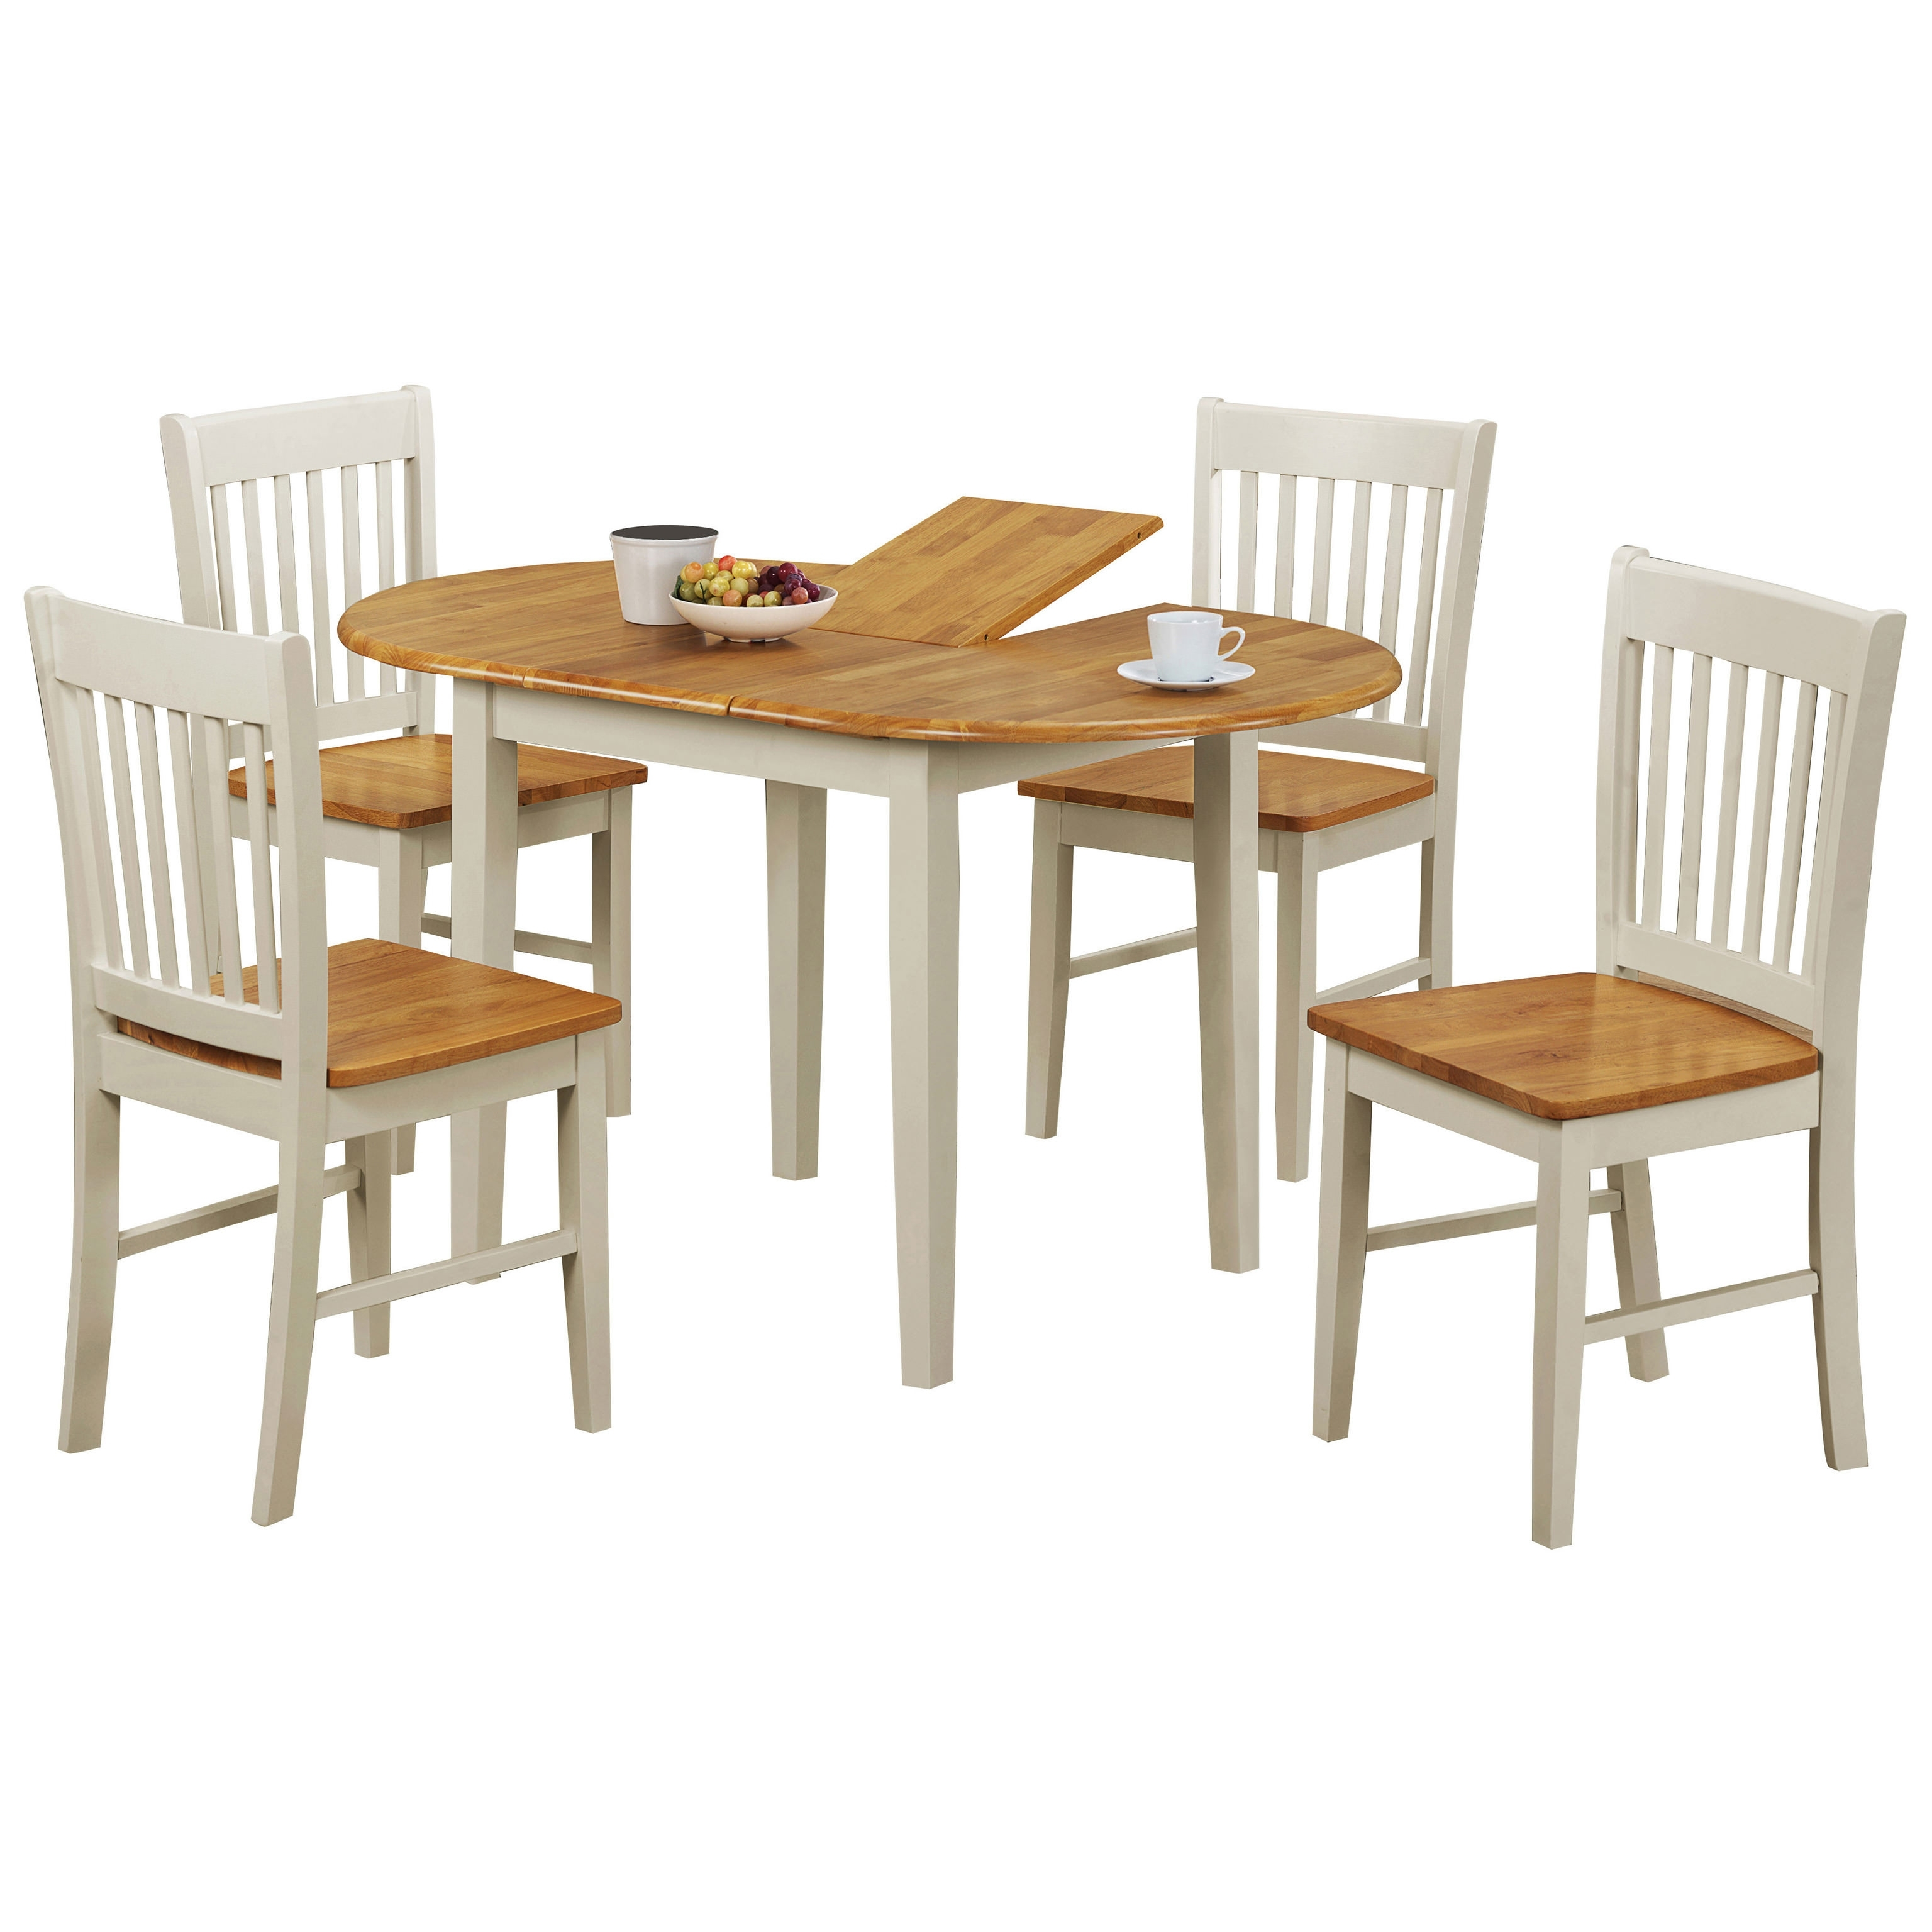 Well Known Oak & White Oval Extending Extendable Dining Table And Chair Set Regarding White Extendable Dining Tables And Chairs (View 25 of 25)